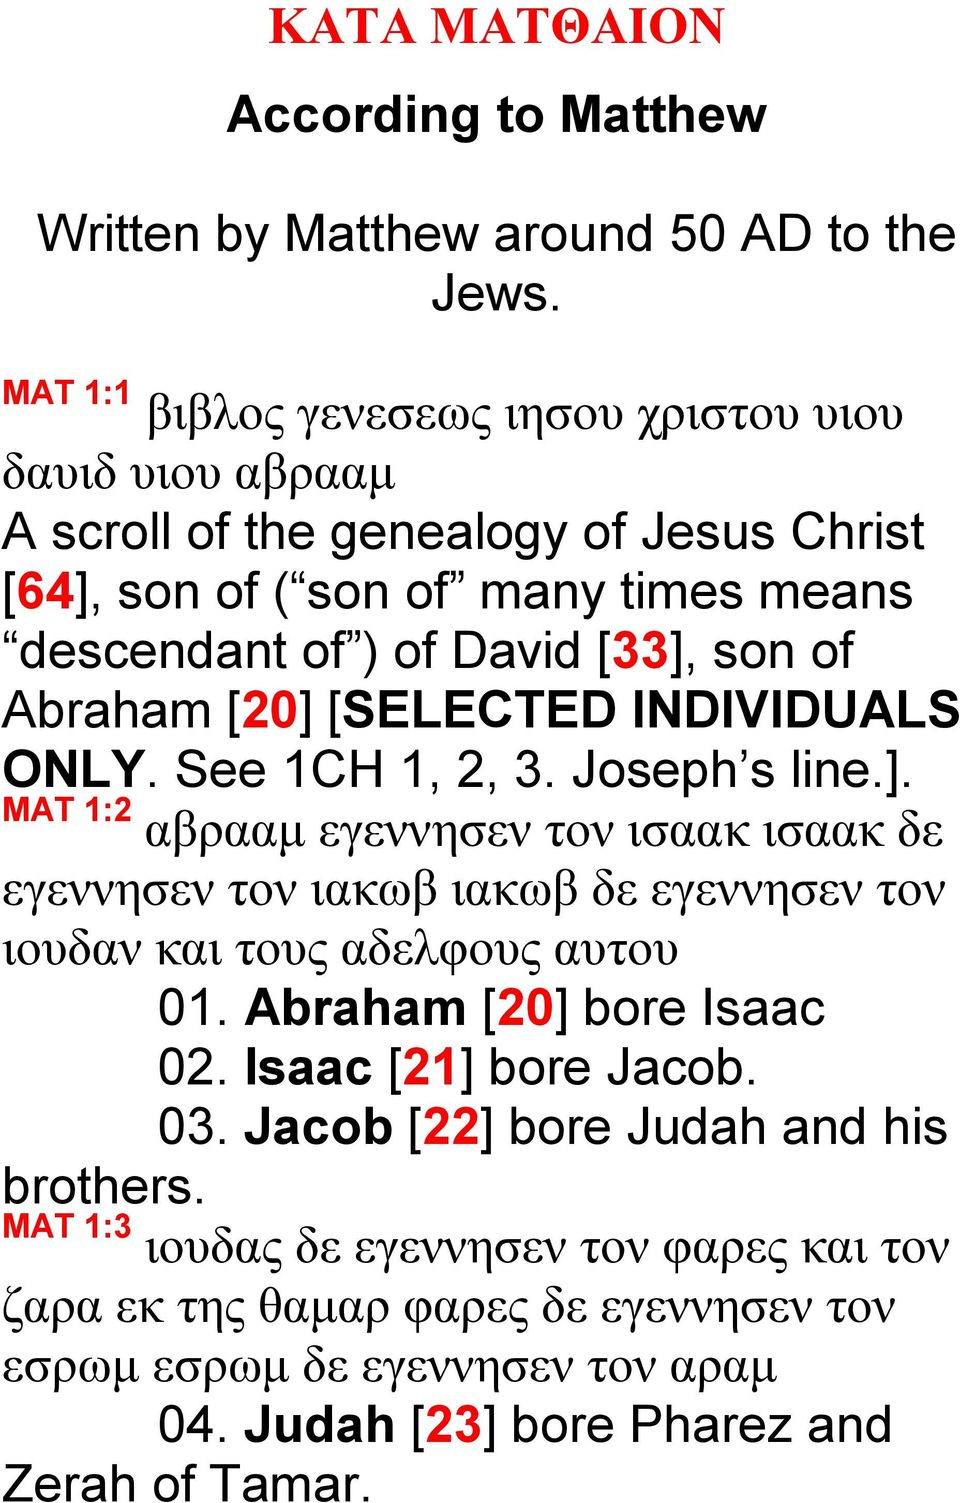 Abraham [20] [SELECTED INDIVIDUALS ONLY. See 1CH 1, 2, 3. Joseph s line.]. MAT 1:2 αβρααμ εγεννησεν τον ισαακ ισαακ δε εγεννησεν τον ιακωβ ιακωβ δε εγεννησεν τον ιουδαν και τους αδελφους αυτου 01.